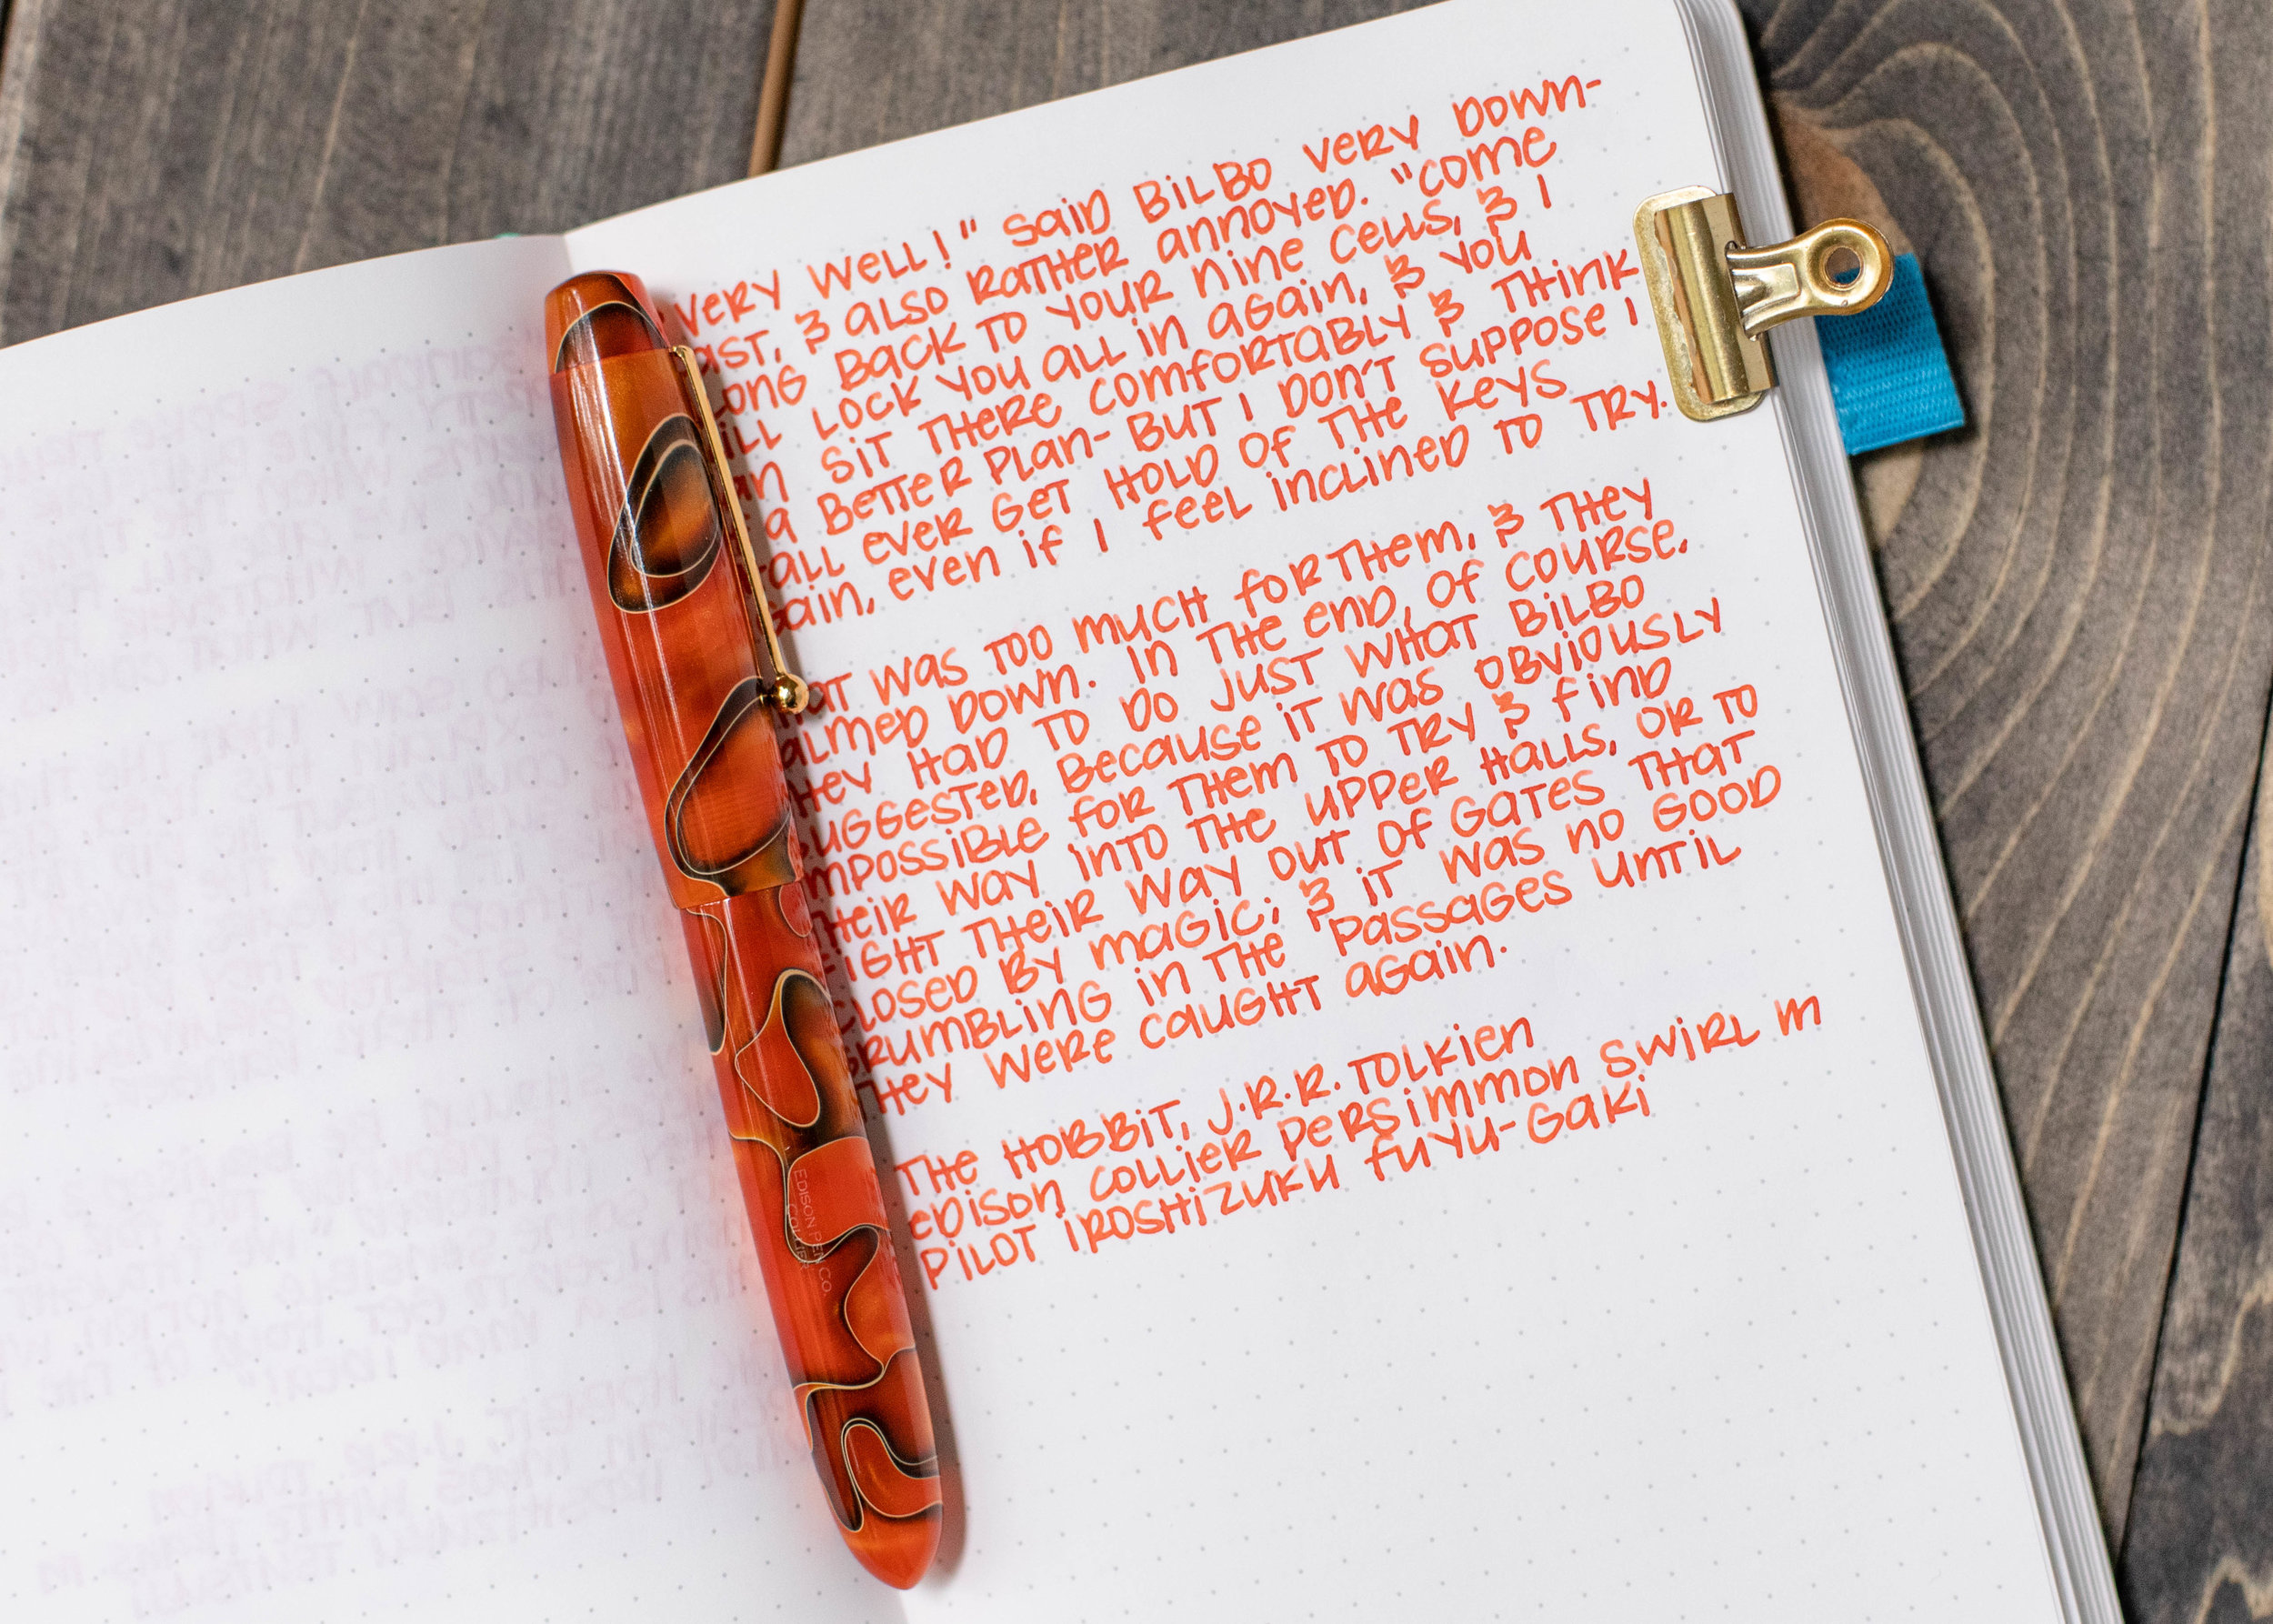 I used a medium Edison Collier Persimmon Swirl on Tomoe River 68. The ink had a wet flow. This ink matches the pen really well, great match for fall.